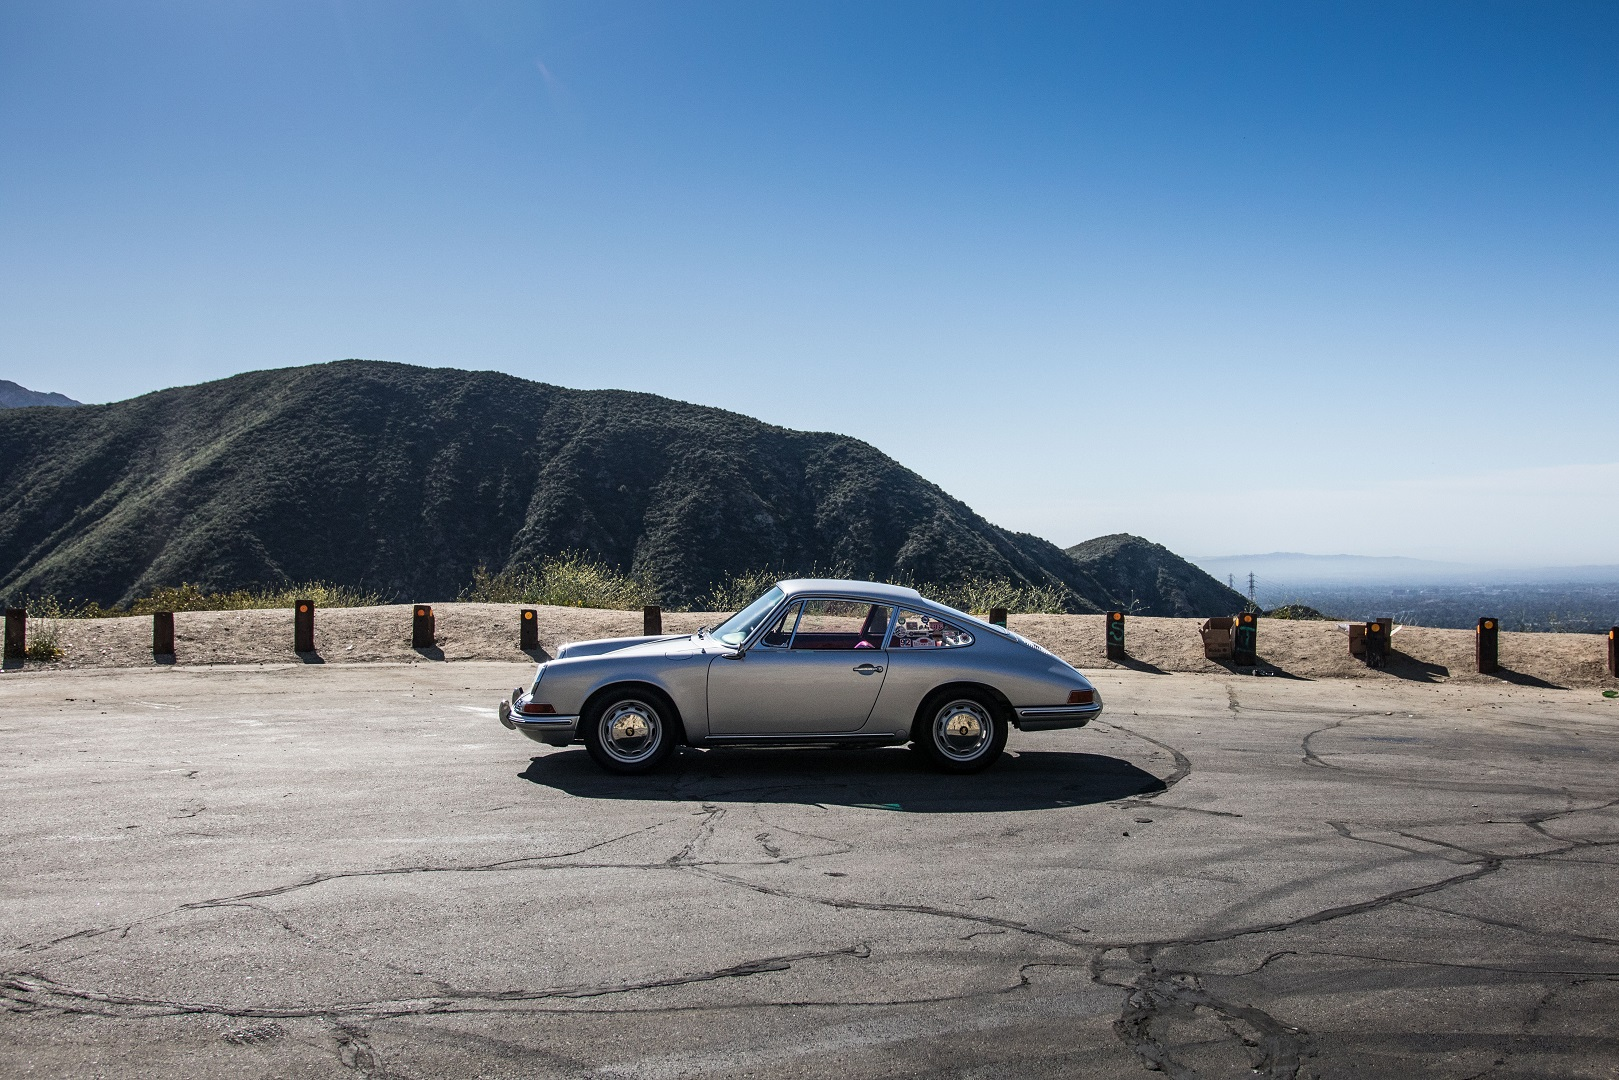 Electric Porsche 912 Side view with mountain